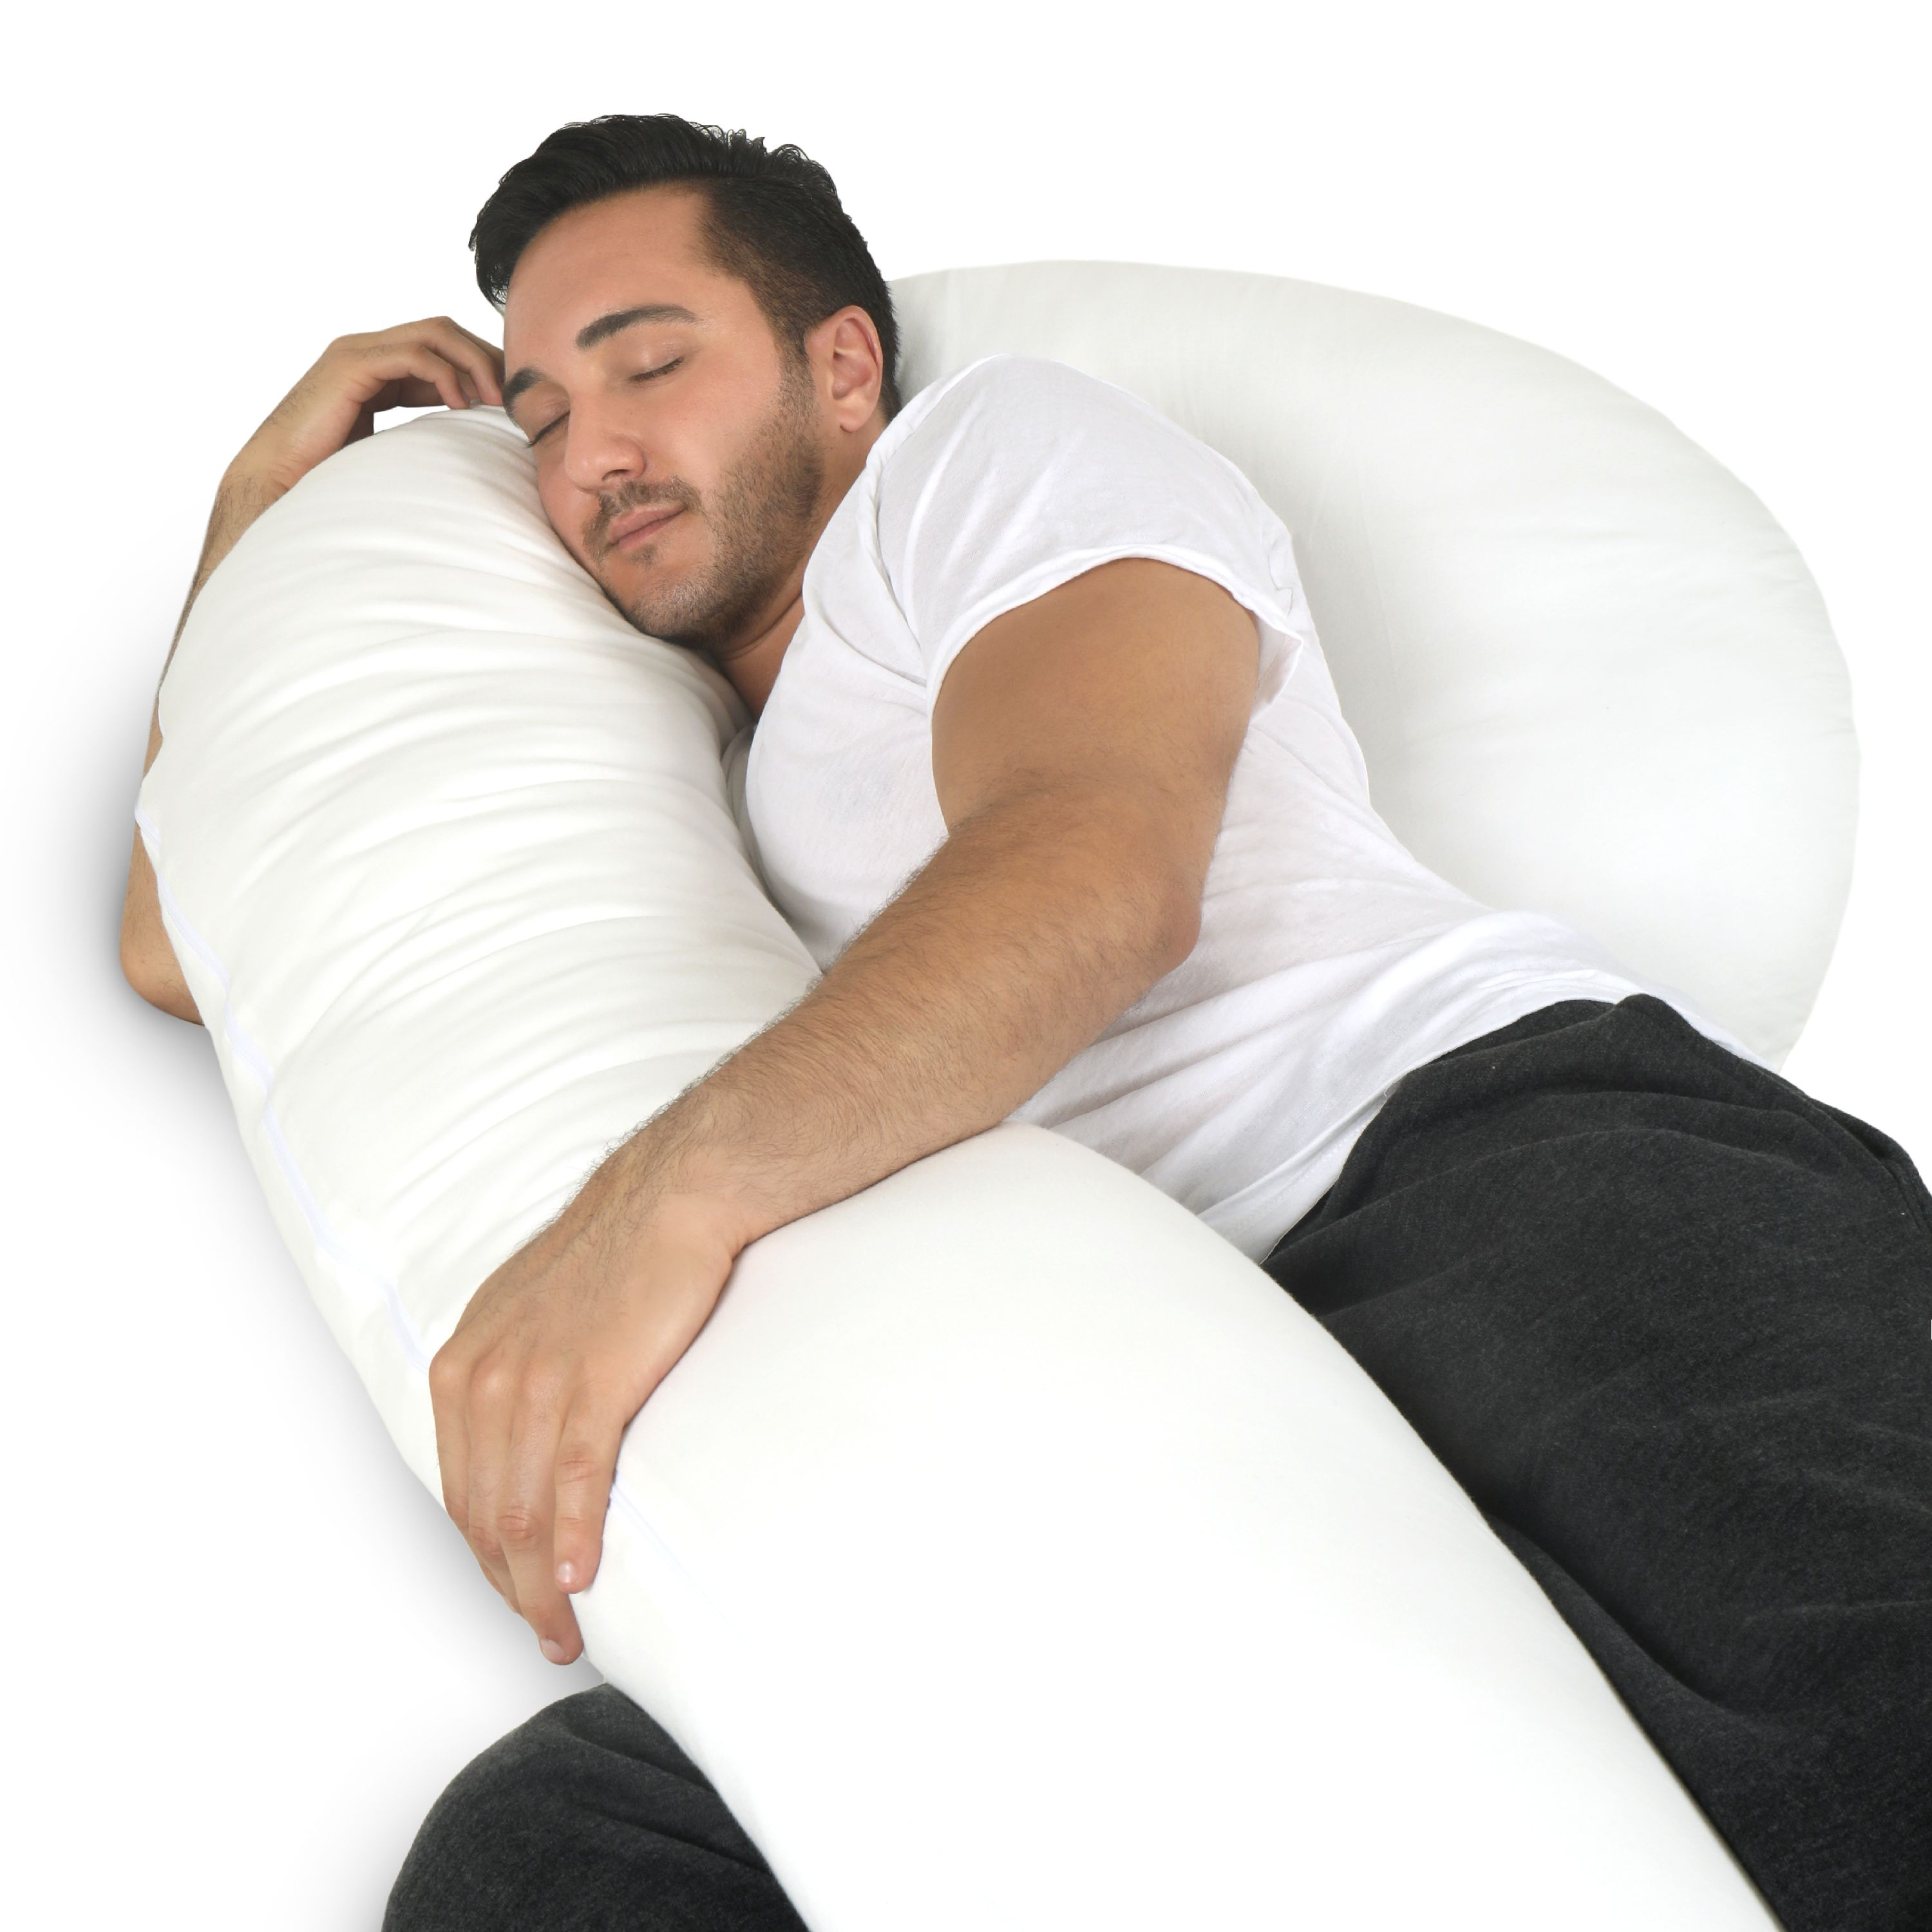 Full Body Pillow - C Shaped Body Pillow for Men and Women - includes 100% Cotton Cover